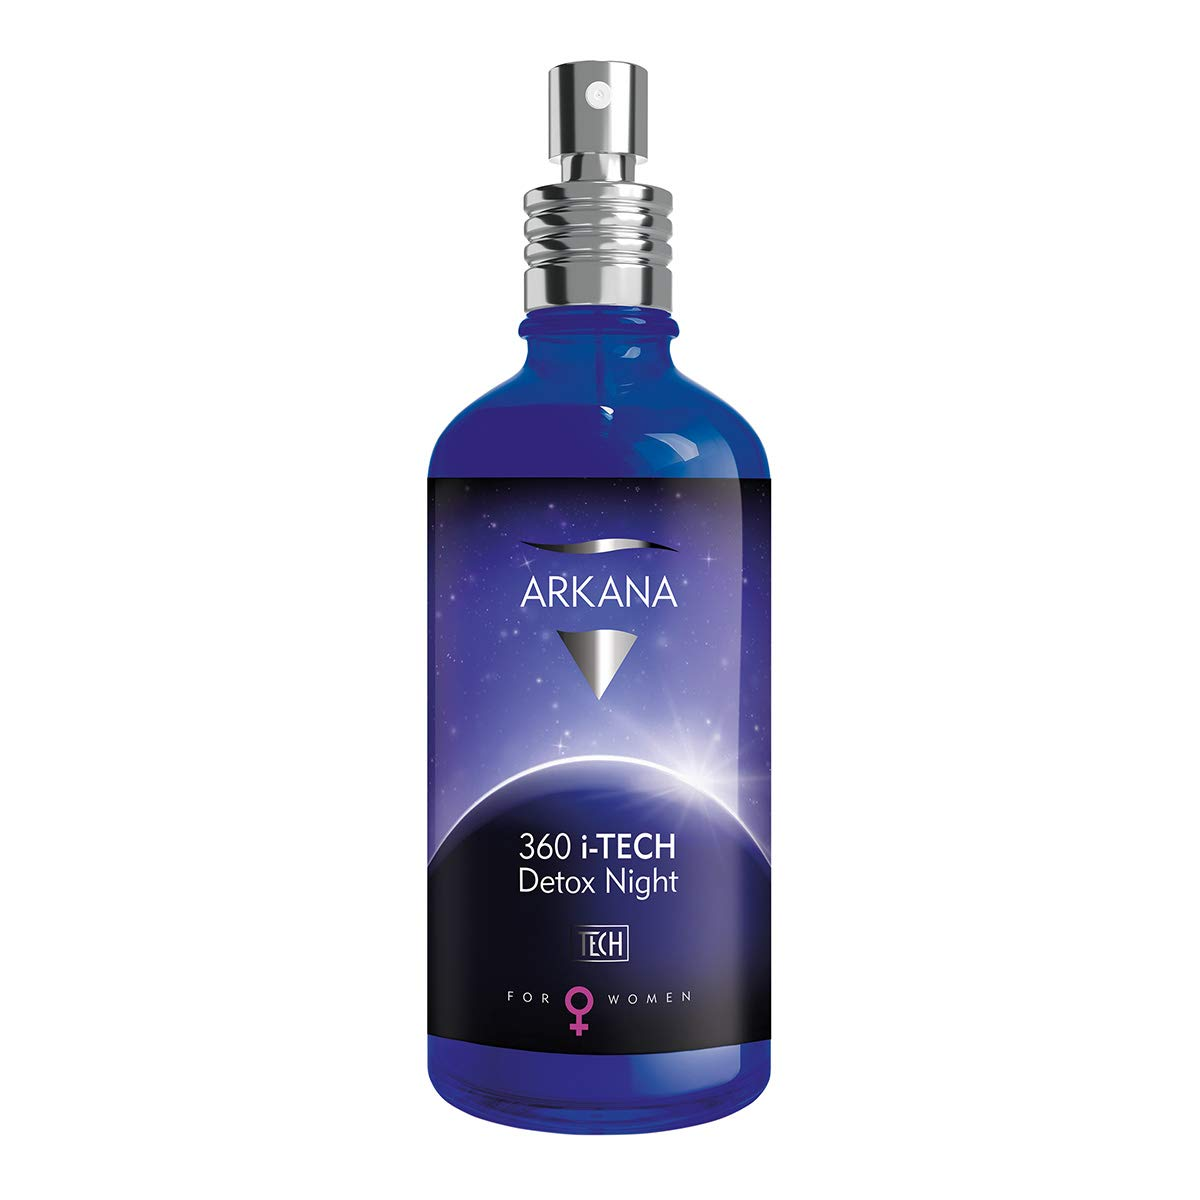 Detoxifying Skincare, Anti-Pollution Restorative Night Face Mist Elixir, 360 i-TECH Detox Night, made in EU by Arkana, Med Spa Brand